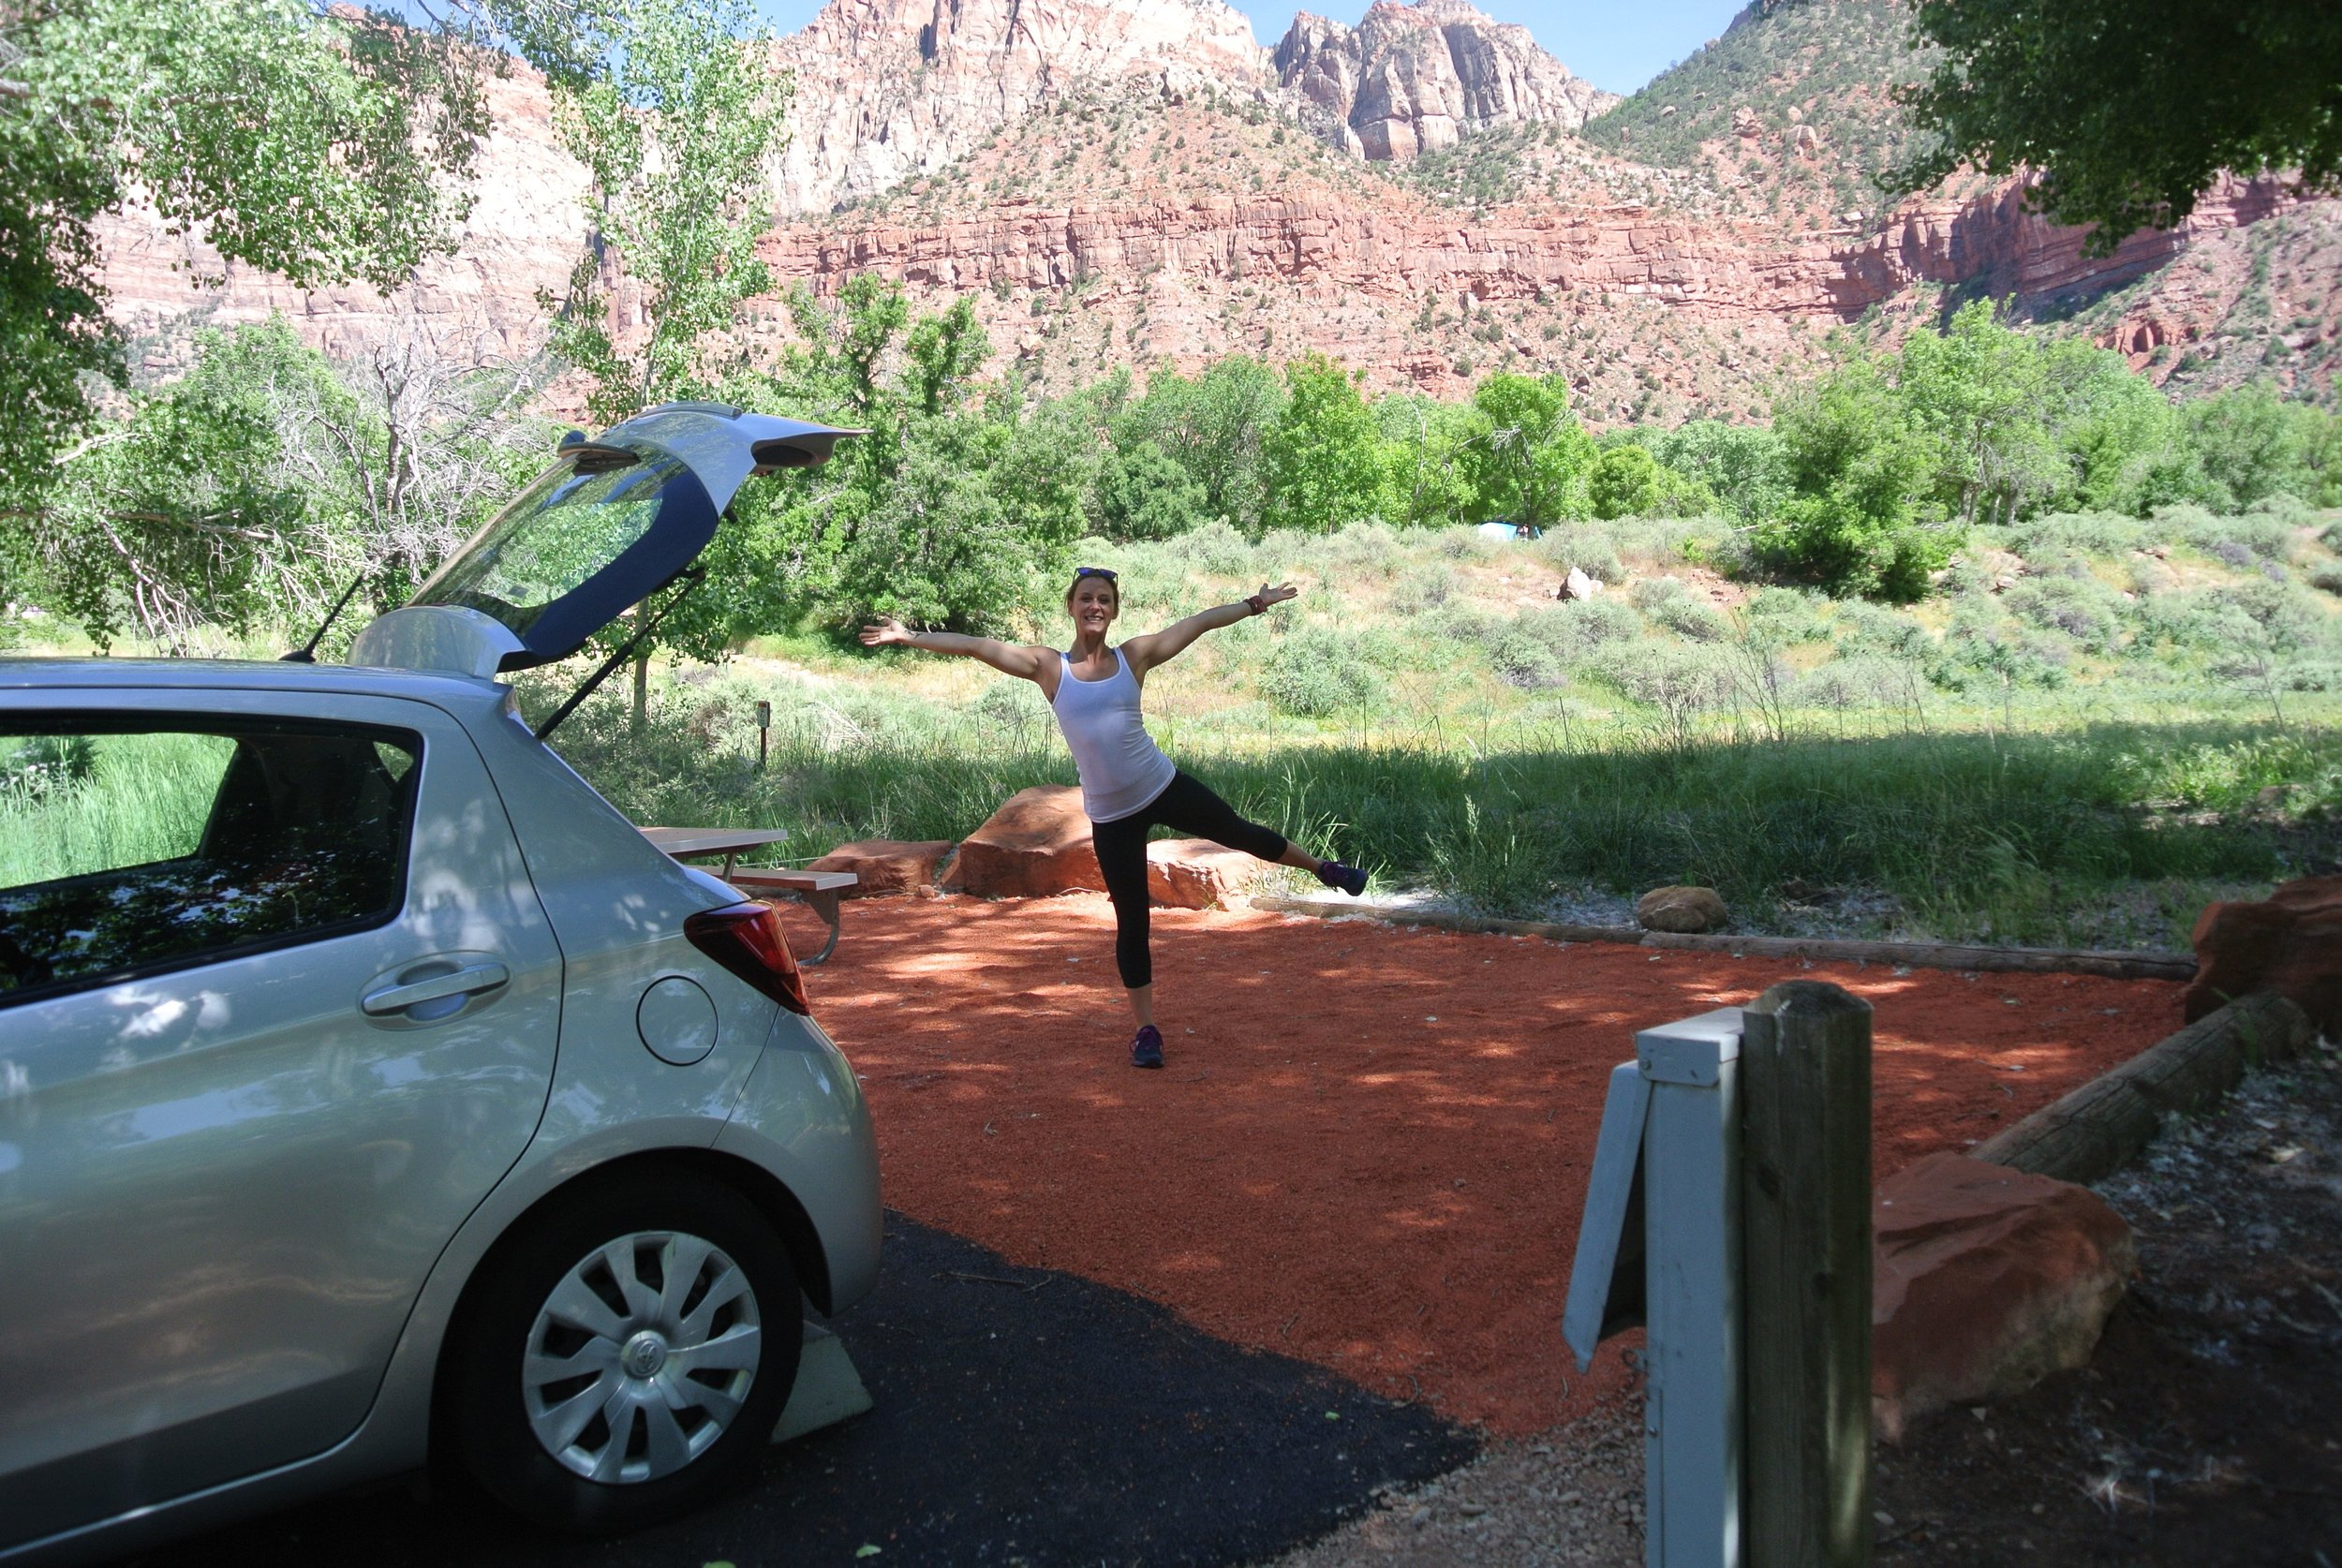 You'll soon learn this is my go-to signature pose. Watchman Campground, Zion National Park.